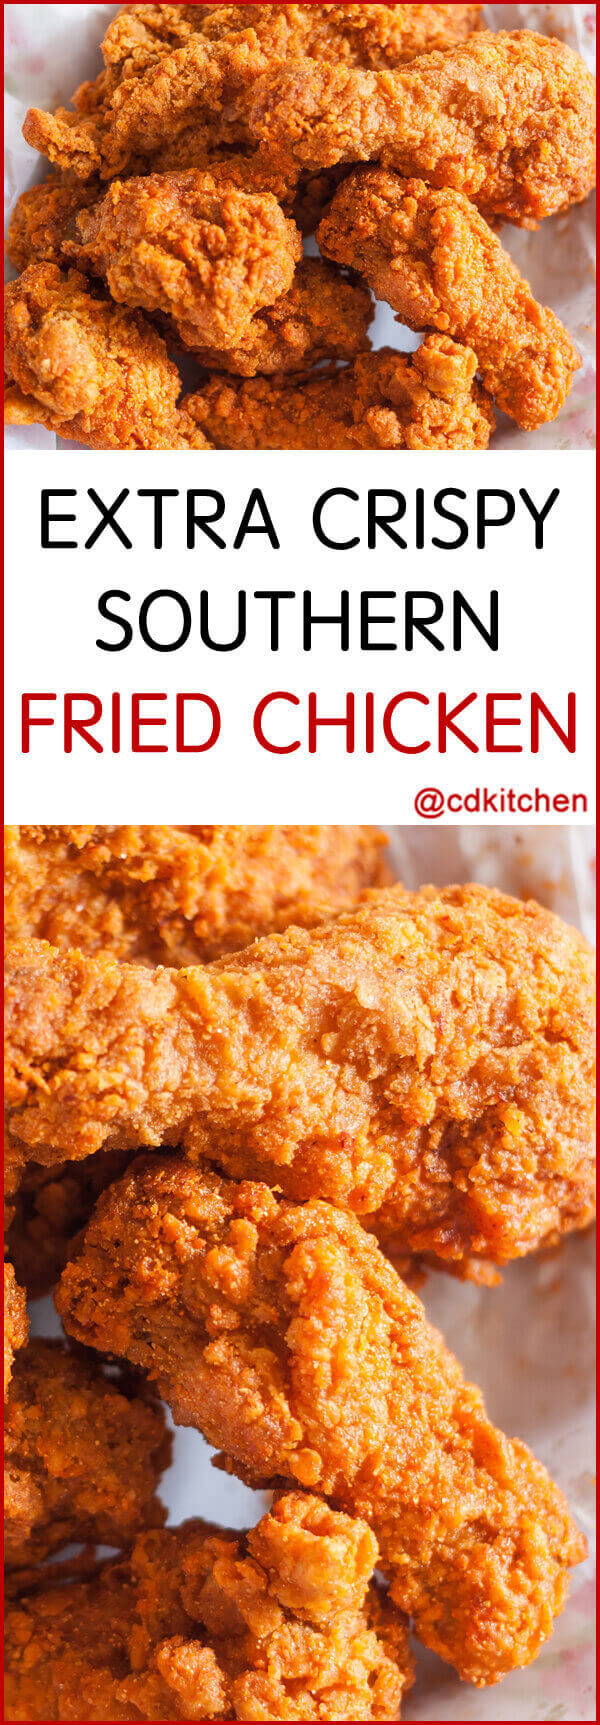 Southern Fried Chicken | Recipe by Eugene Hamilton | Kenwood  |Southern Cooking Fried